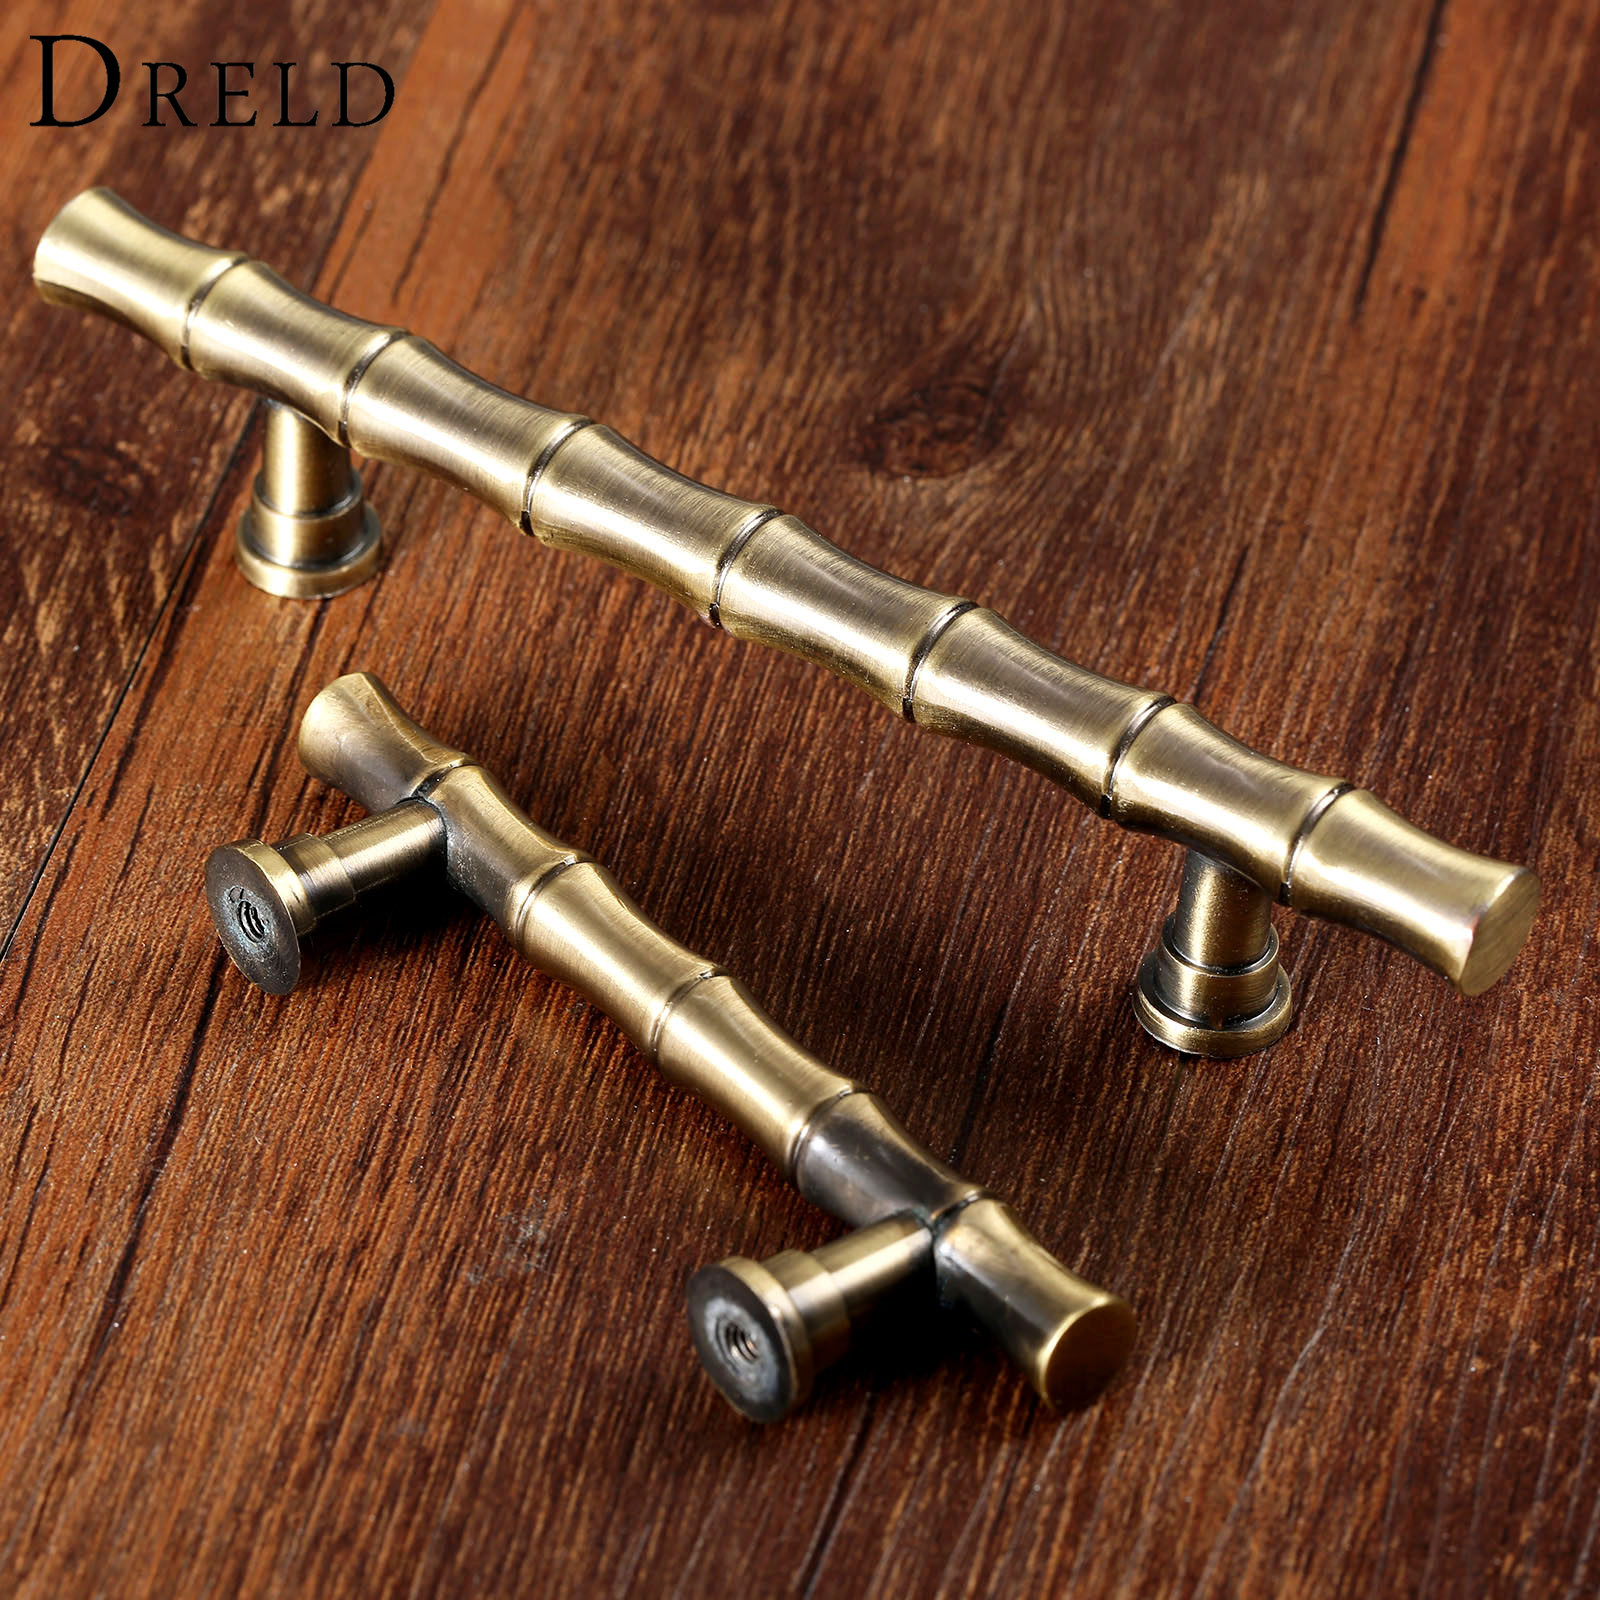 Dreld Antique Br Furniture Handle Vintage Retro Bamboo Drawer Closet Cabinet S And Handles Pull 64mm 96mm In Pulls From Home